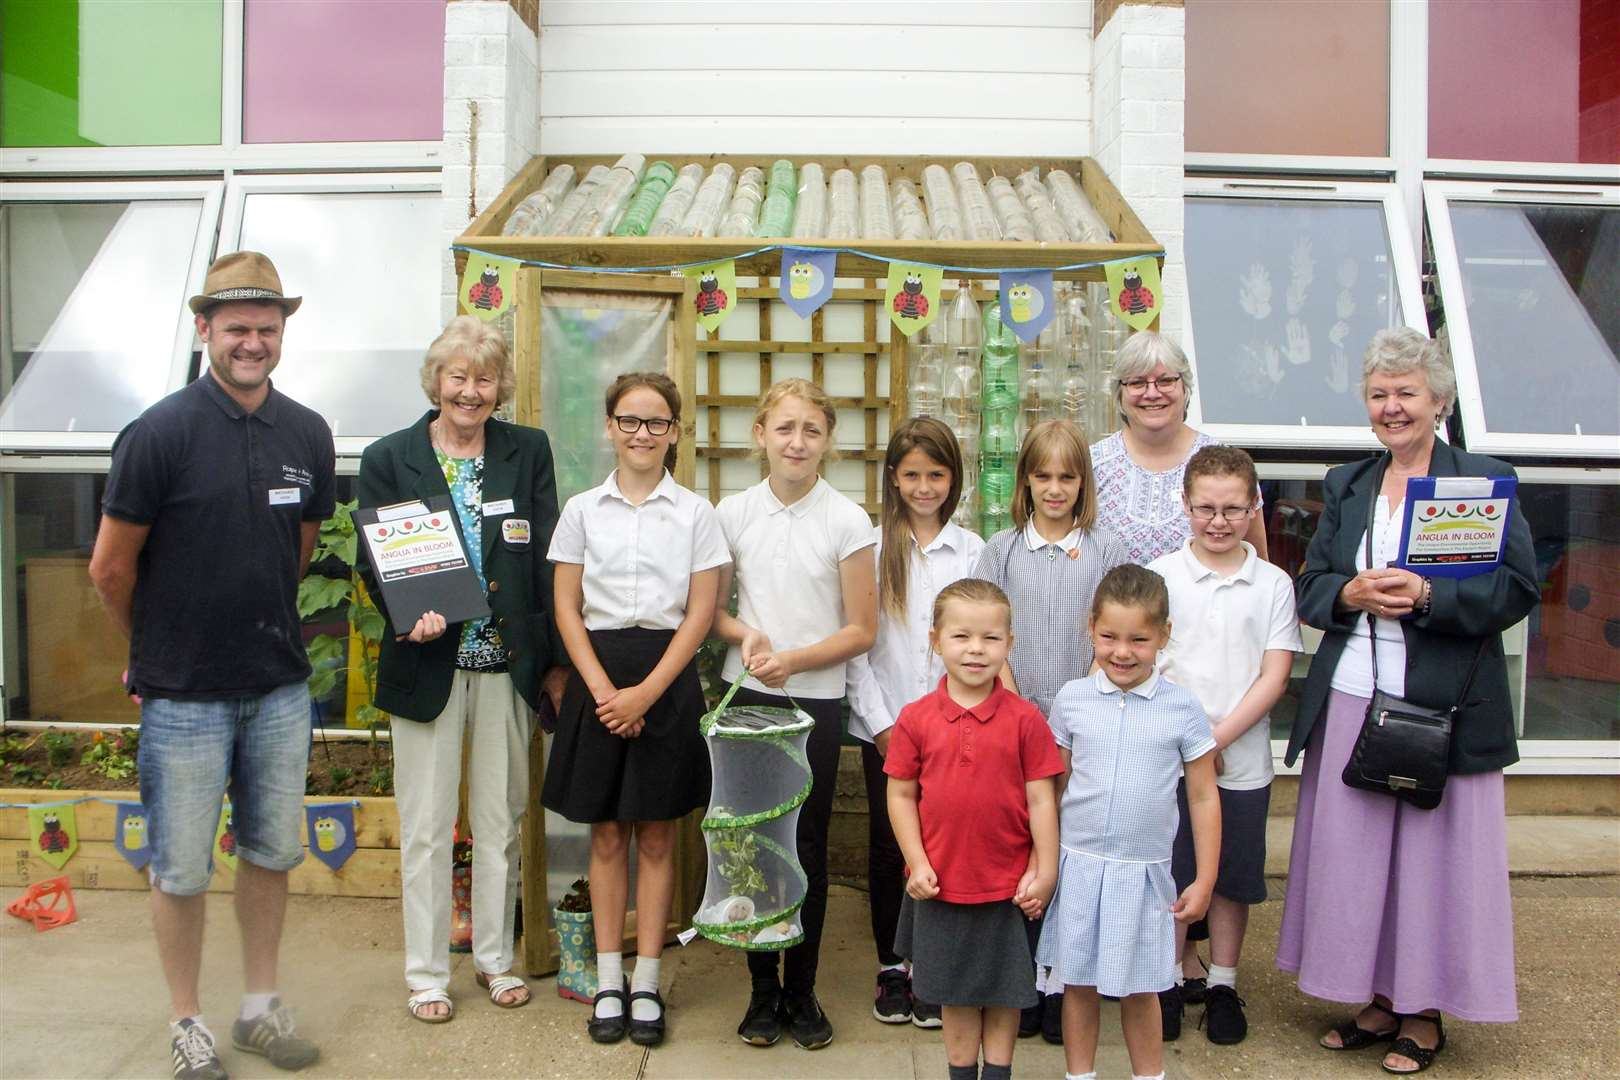 Members of the Orchards Academy's Litter Bugs team with the Anglia in Bloom judges and the greenhouse they have built out of old plastic bottles. (3061340)